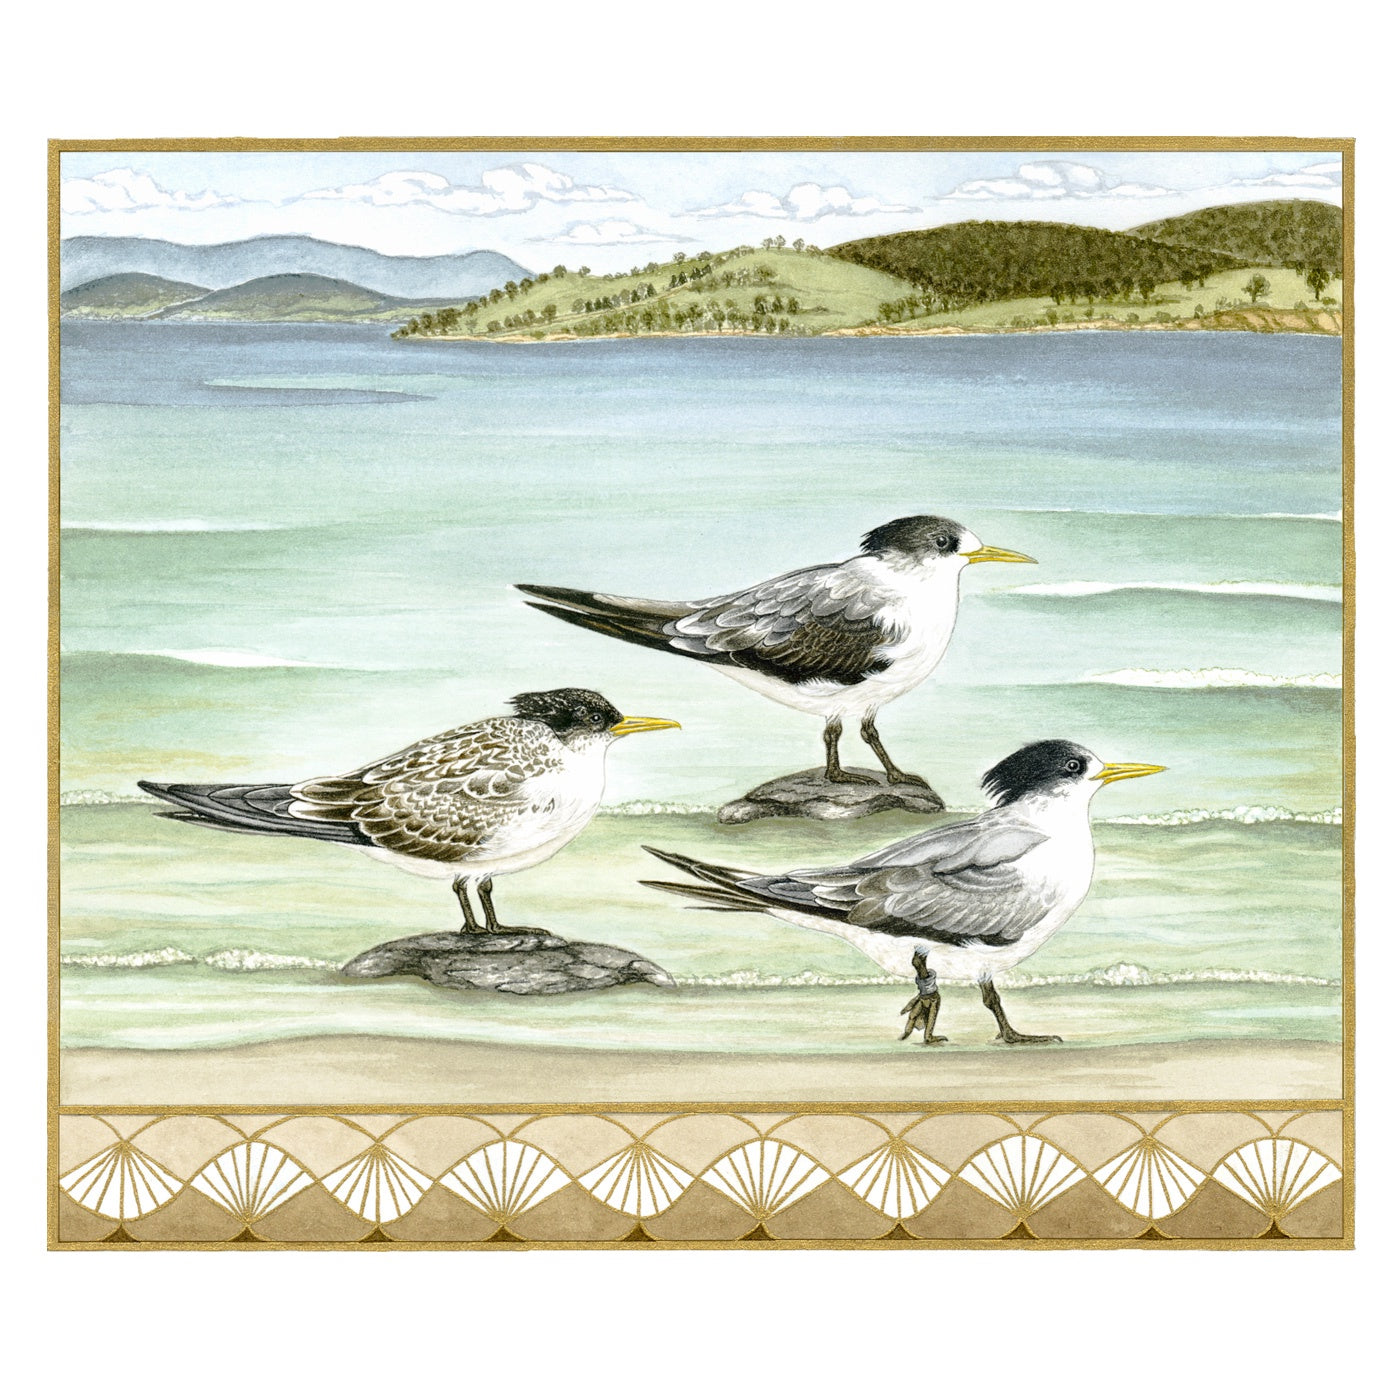 Sylvie Gerozisis - Birds of Tasmania - Art Print - Crested Terns